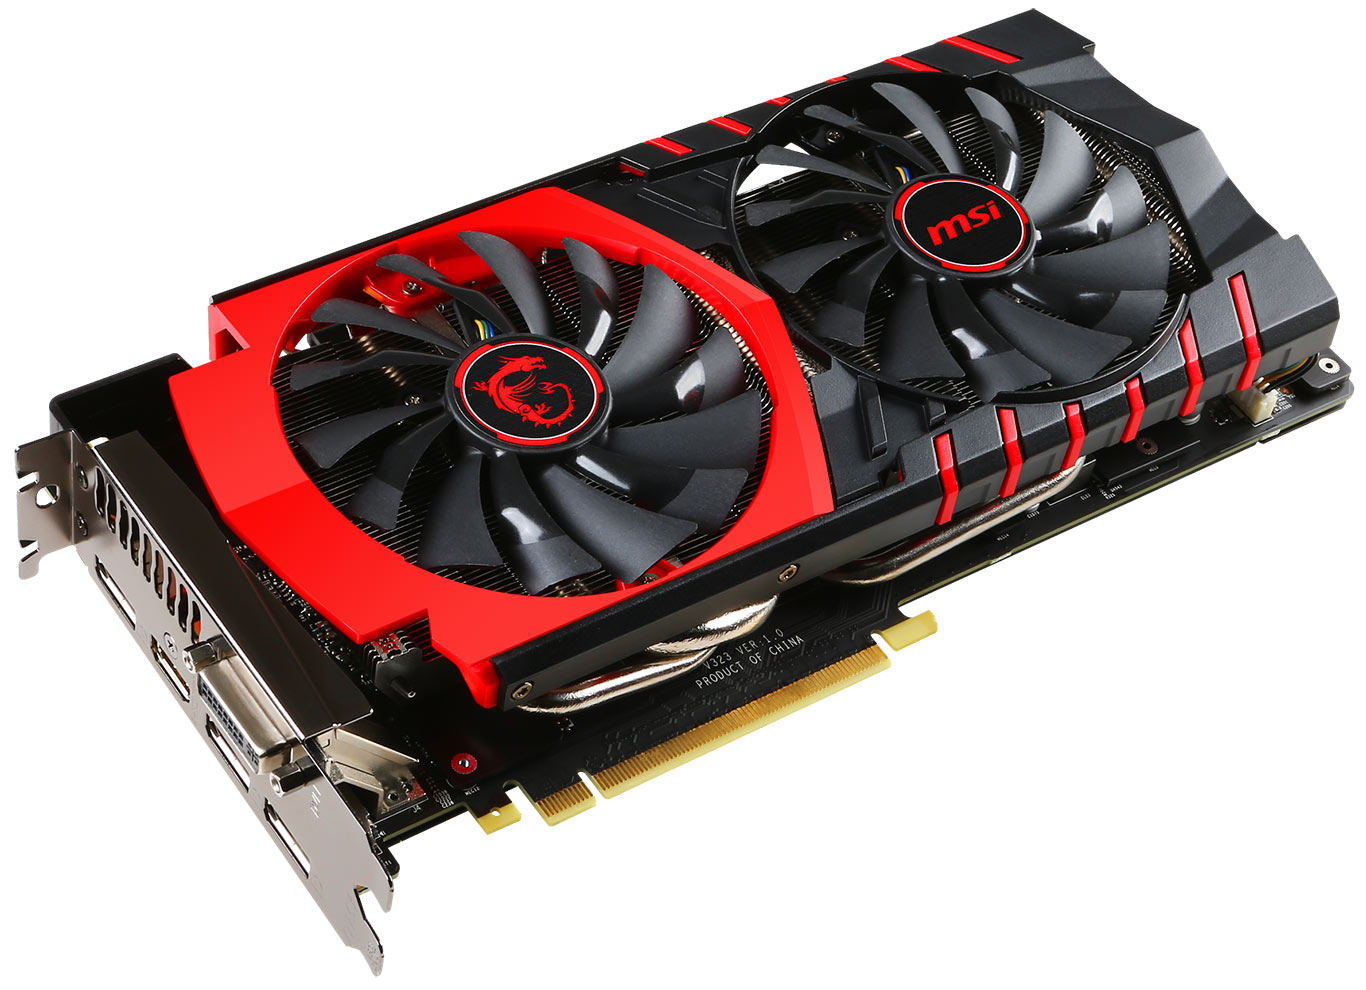 GeForce GTX 980 Ti Round-Up With MSI, ASUS, And EVGA